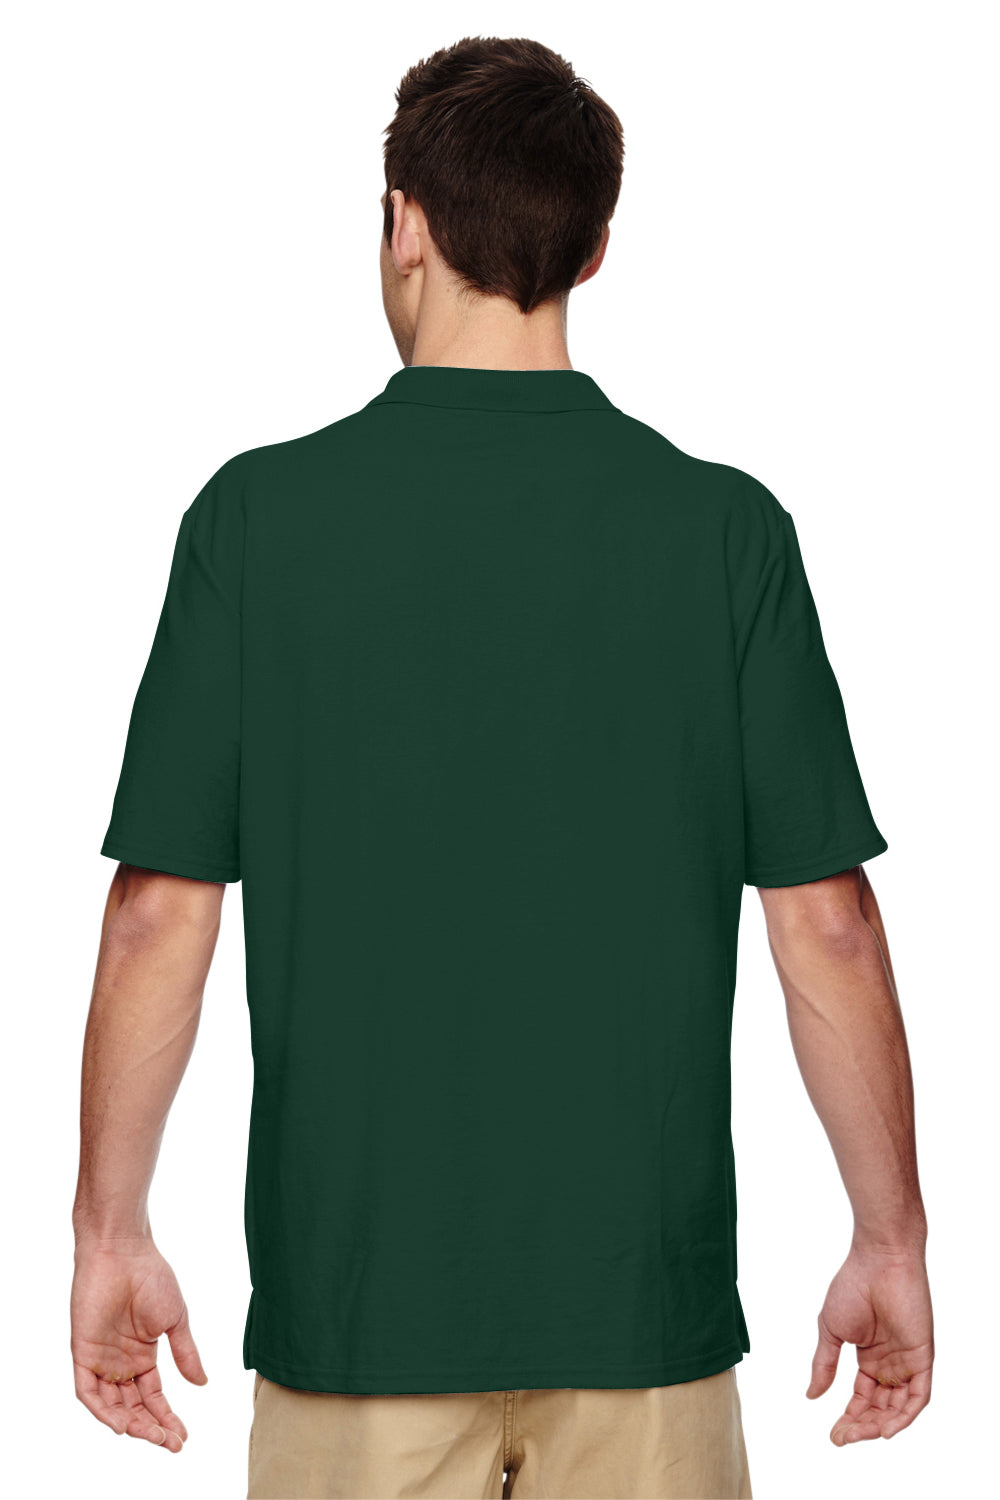 Gildan G728 Mens DryBlend Moisture Wicking Short Sleeve Polo Shirt Forest Green Back